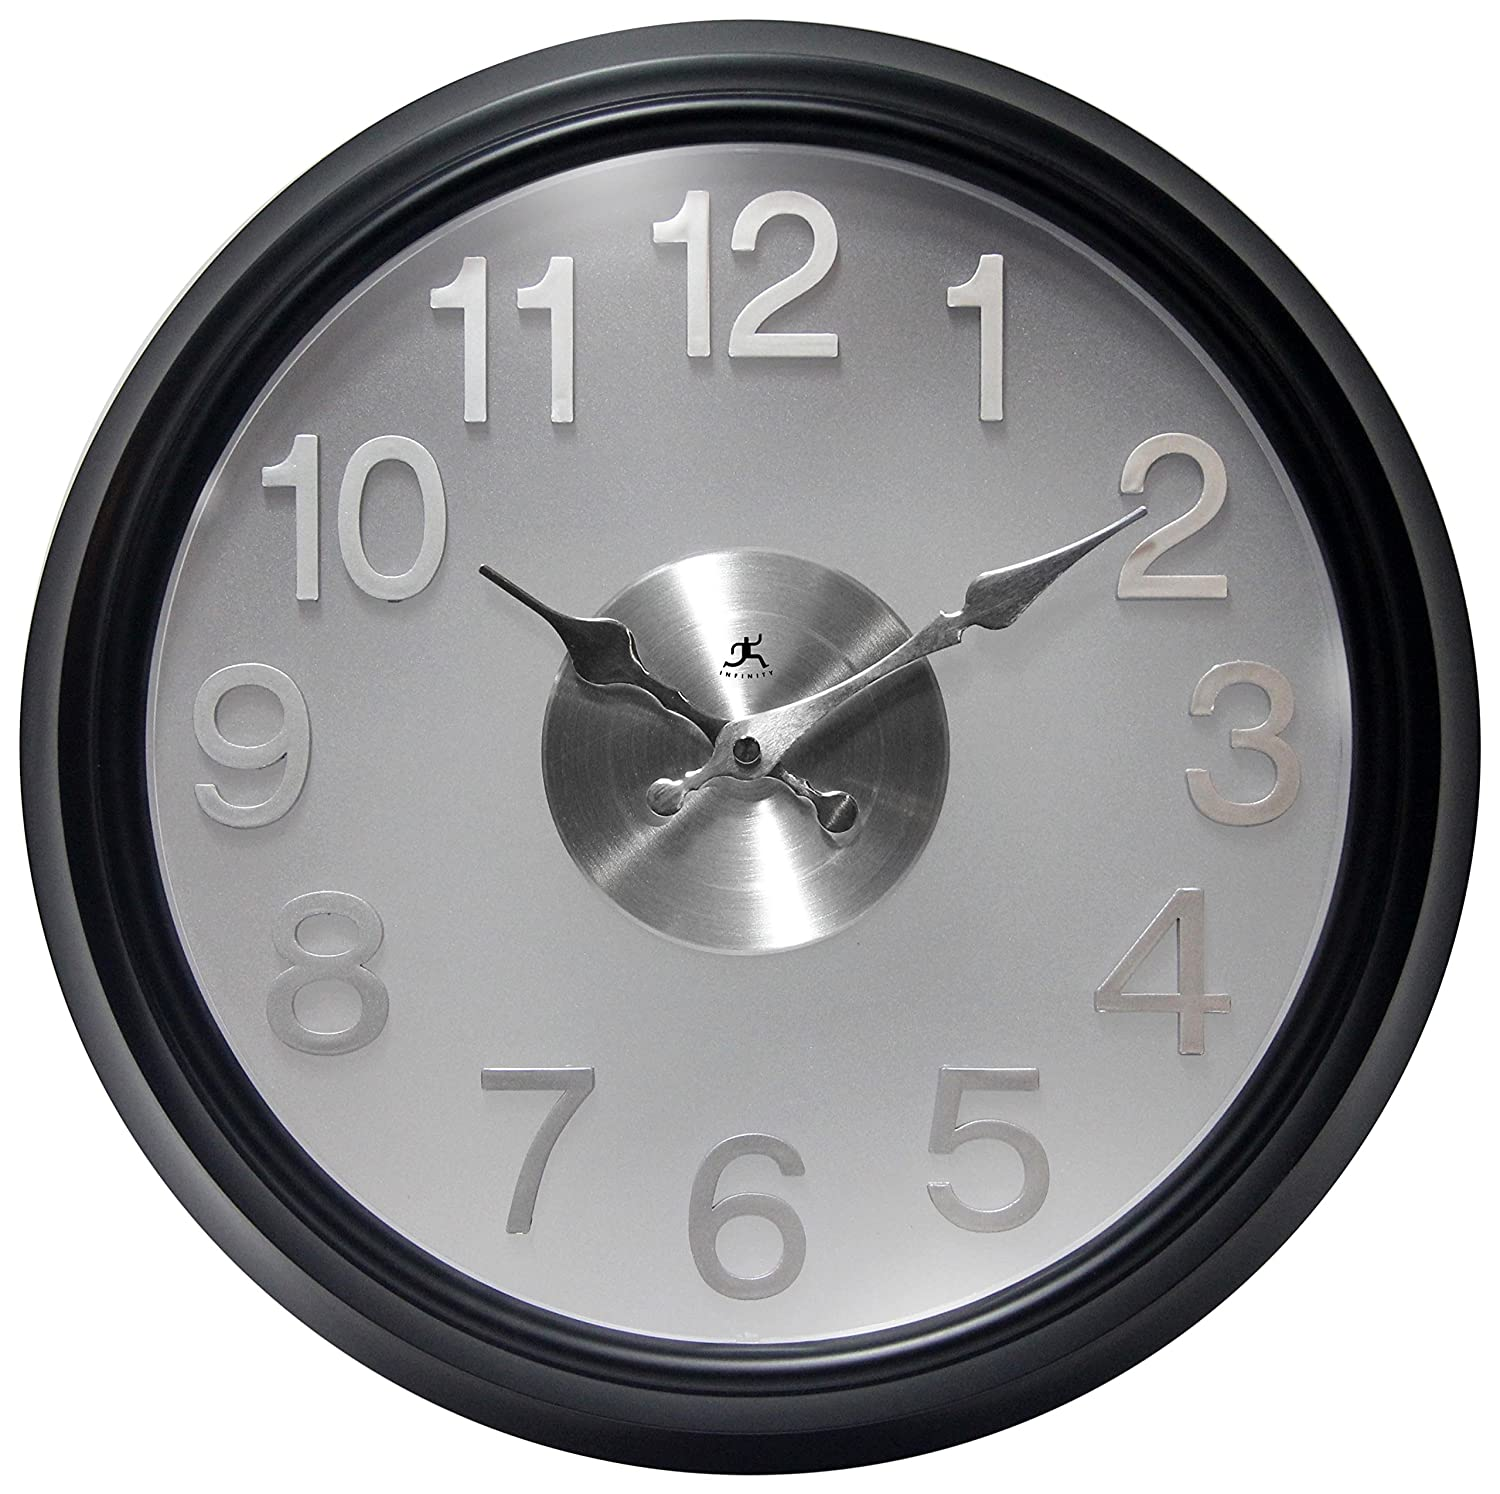 Infinity Instruments The Onyx Wall Clock 13314bk 2510 Home Décor Home Kitchen